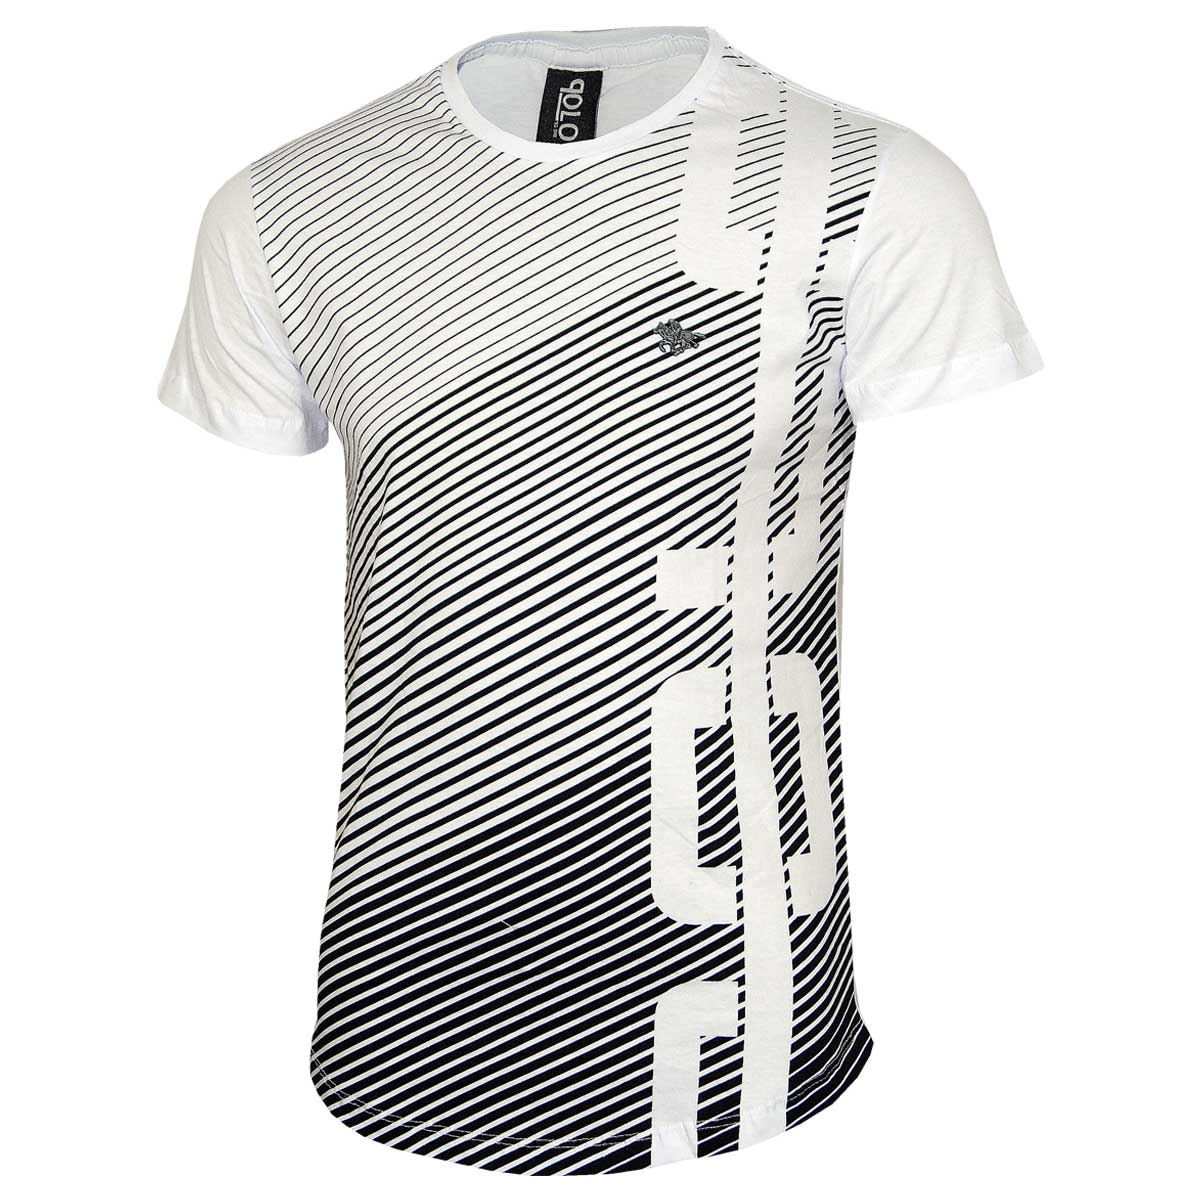 CAMISETA SWAG POLO RG518 COM ESTAMPA REF16882